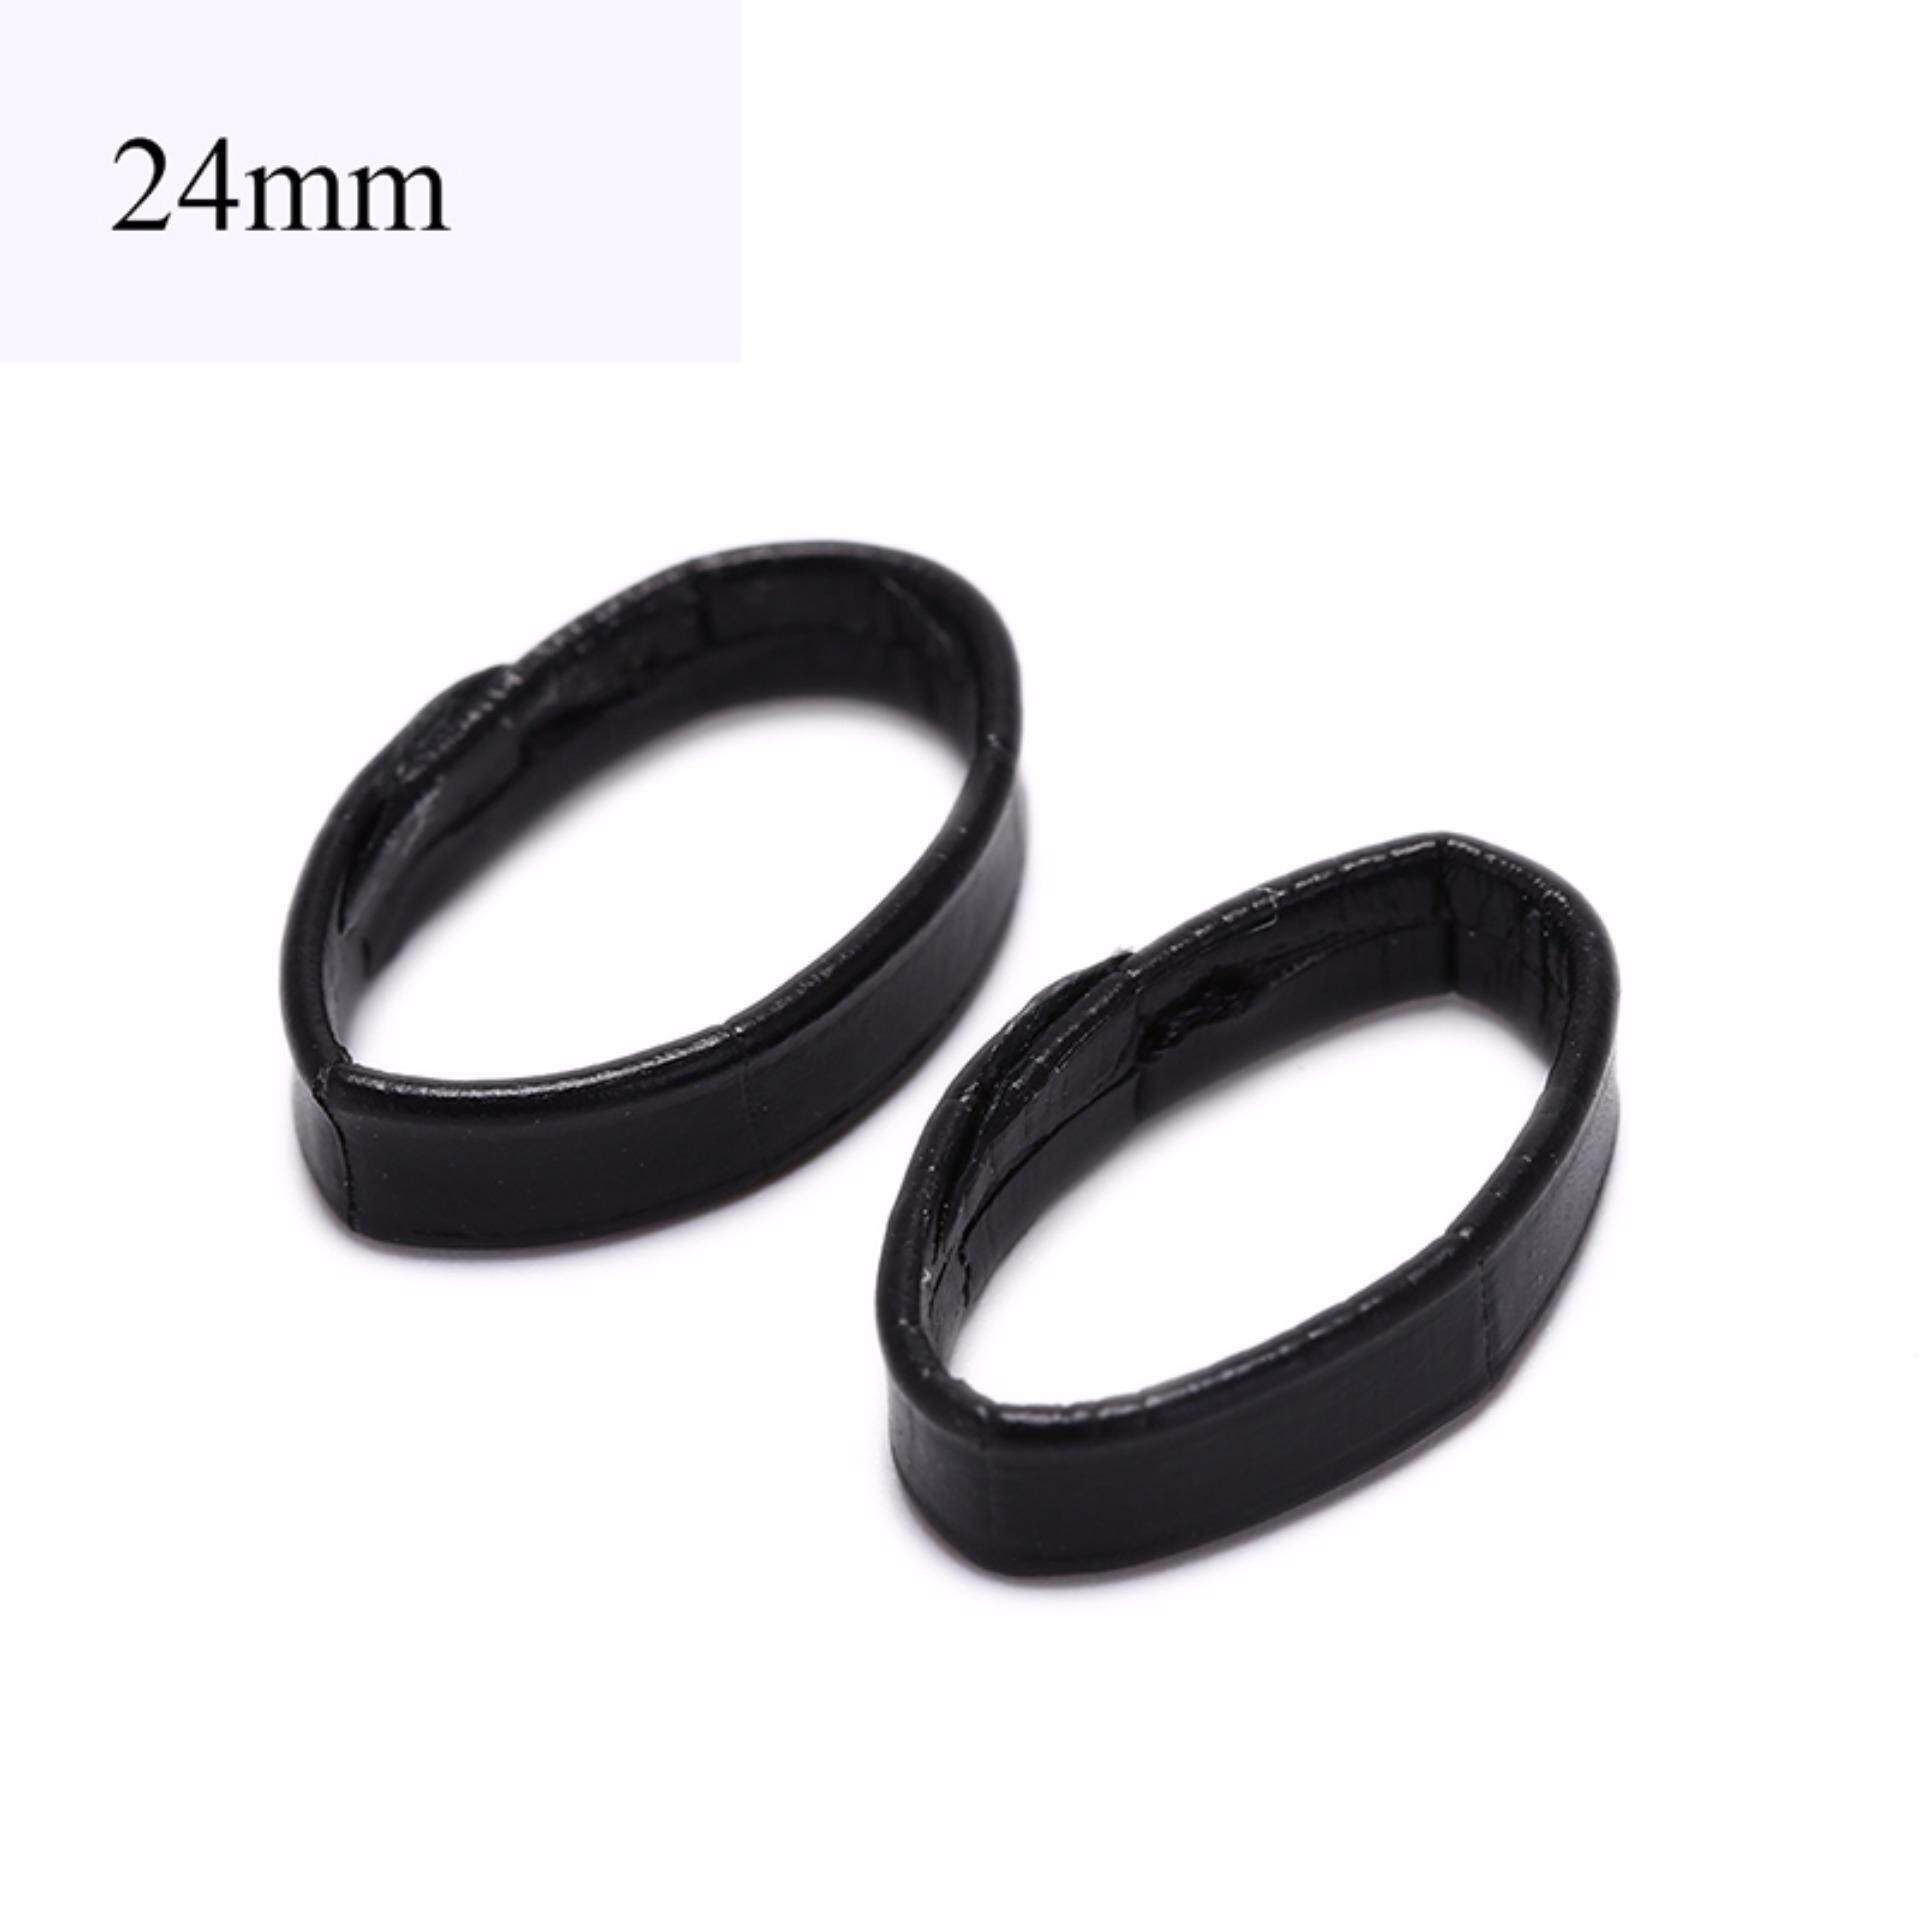 2pcs leather watch band loop strap holder locker keeper loops tool  24mm Malaysia